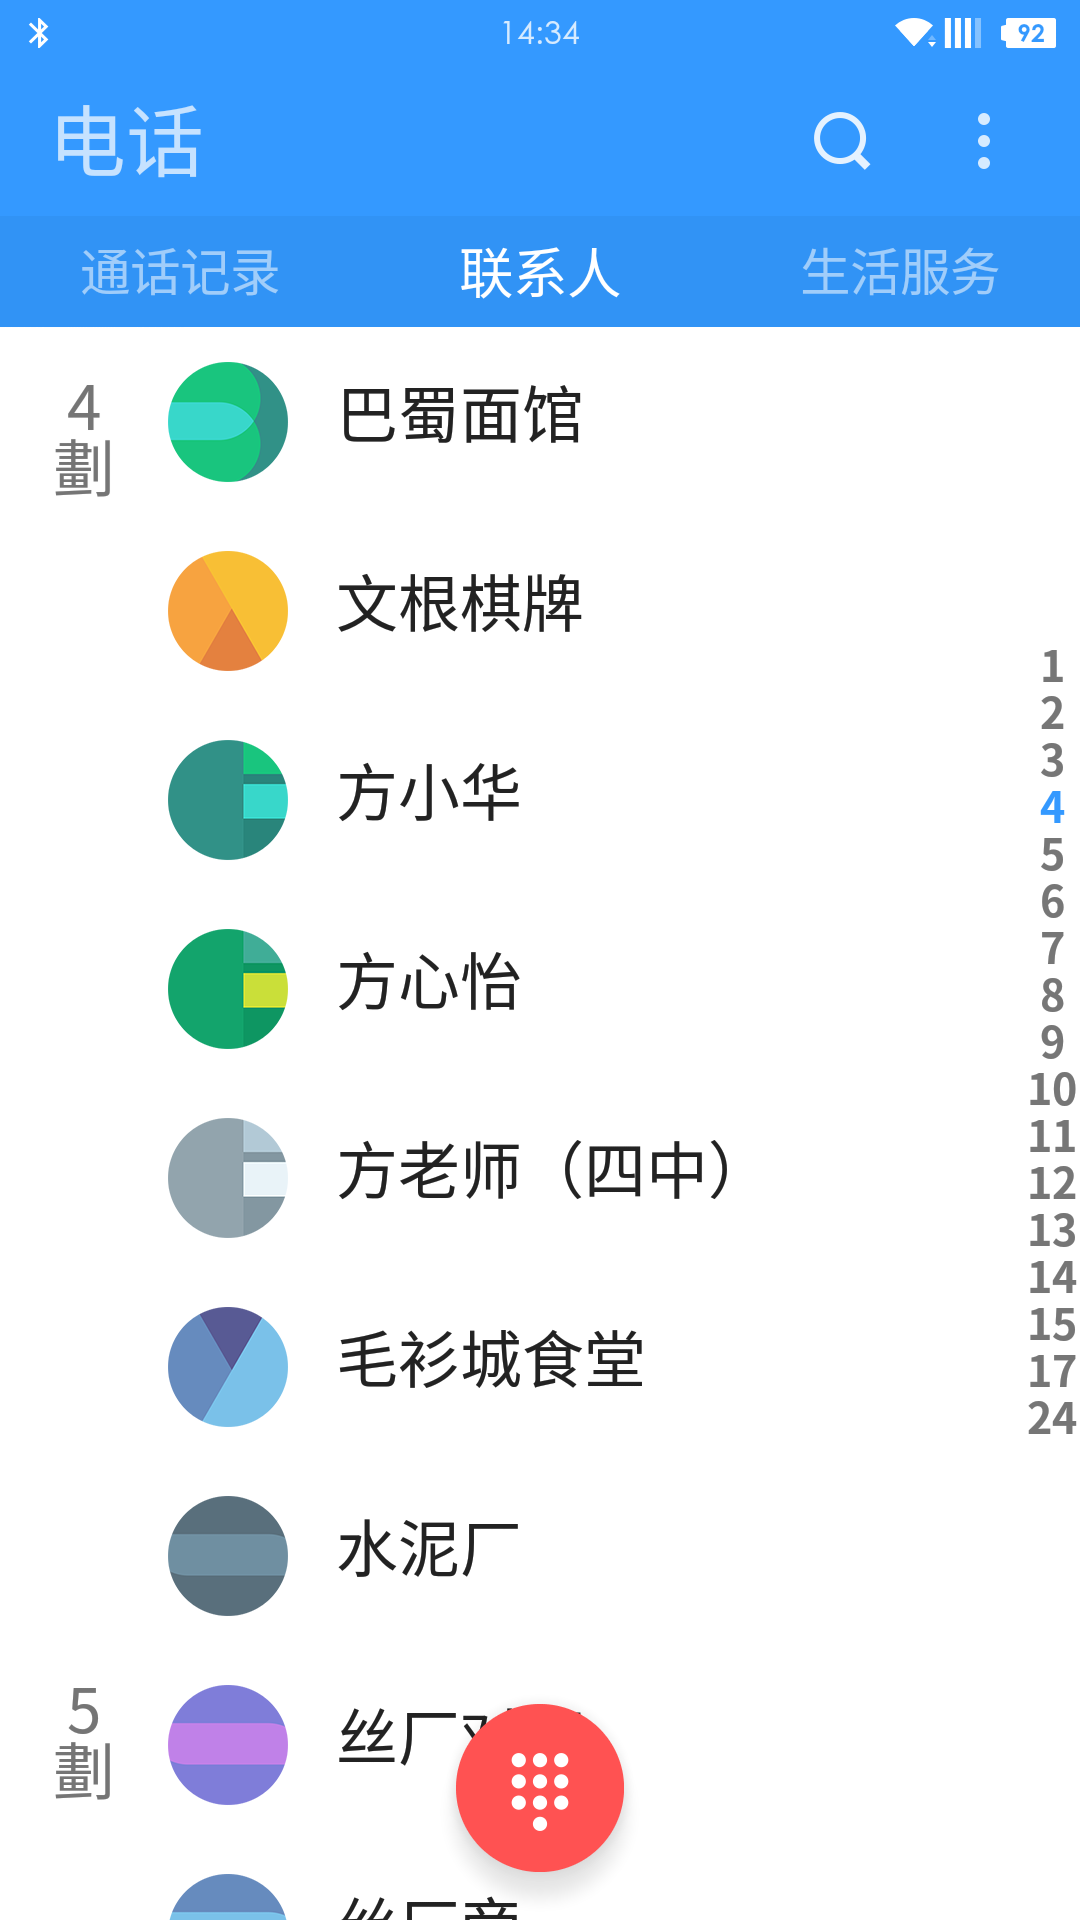 Screenshot_2015-11-19-14-34-59.png